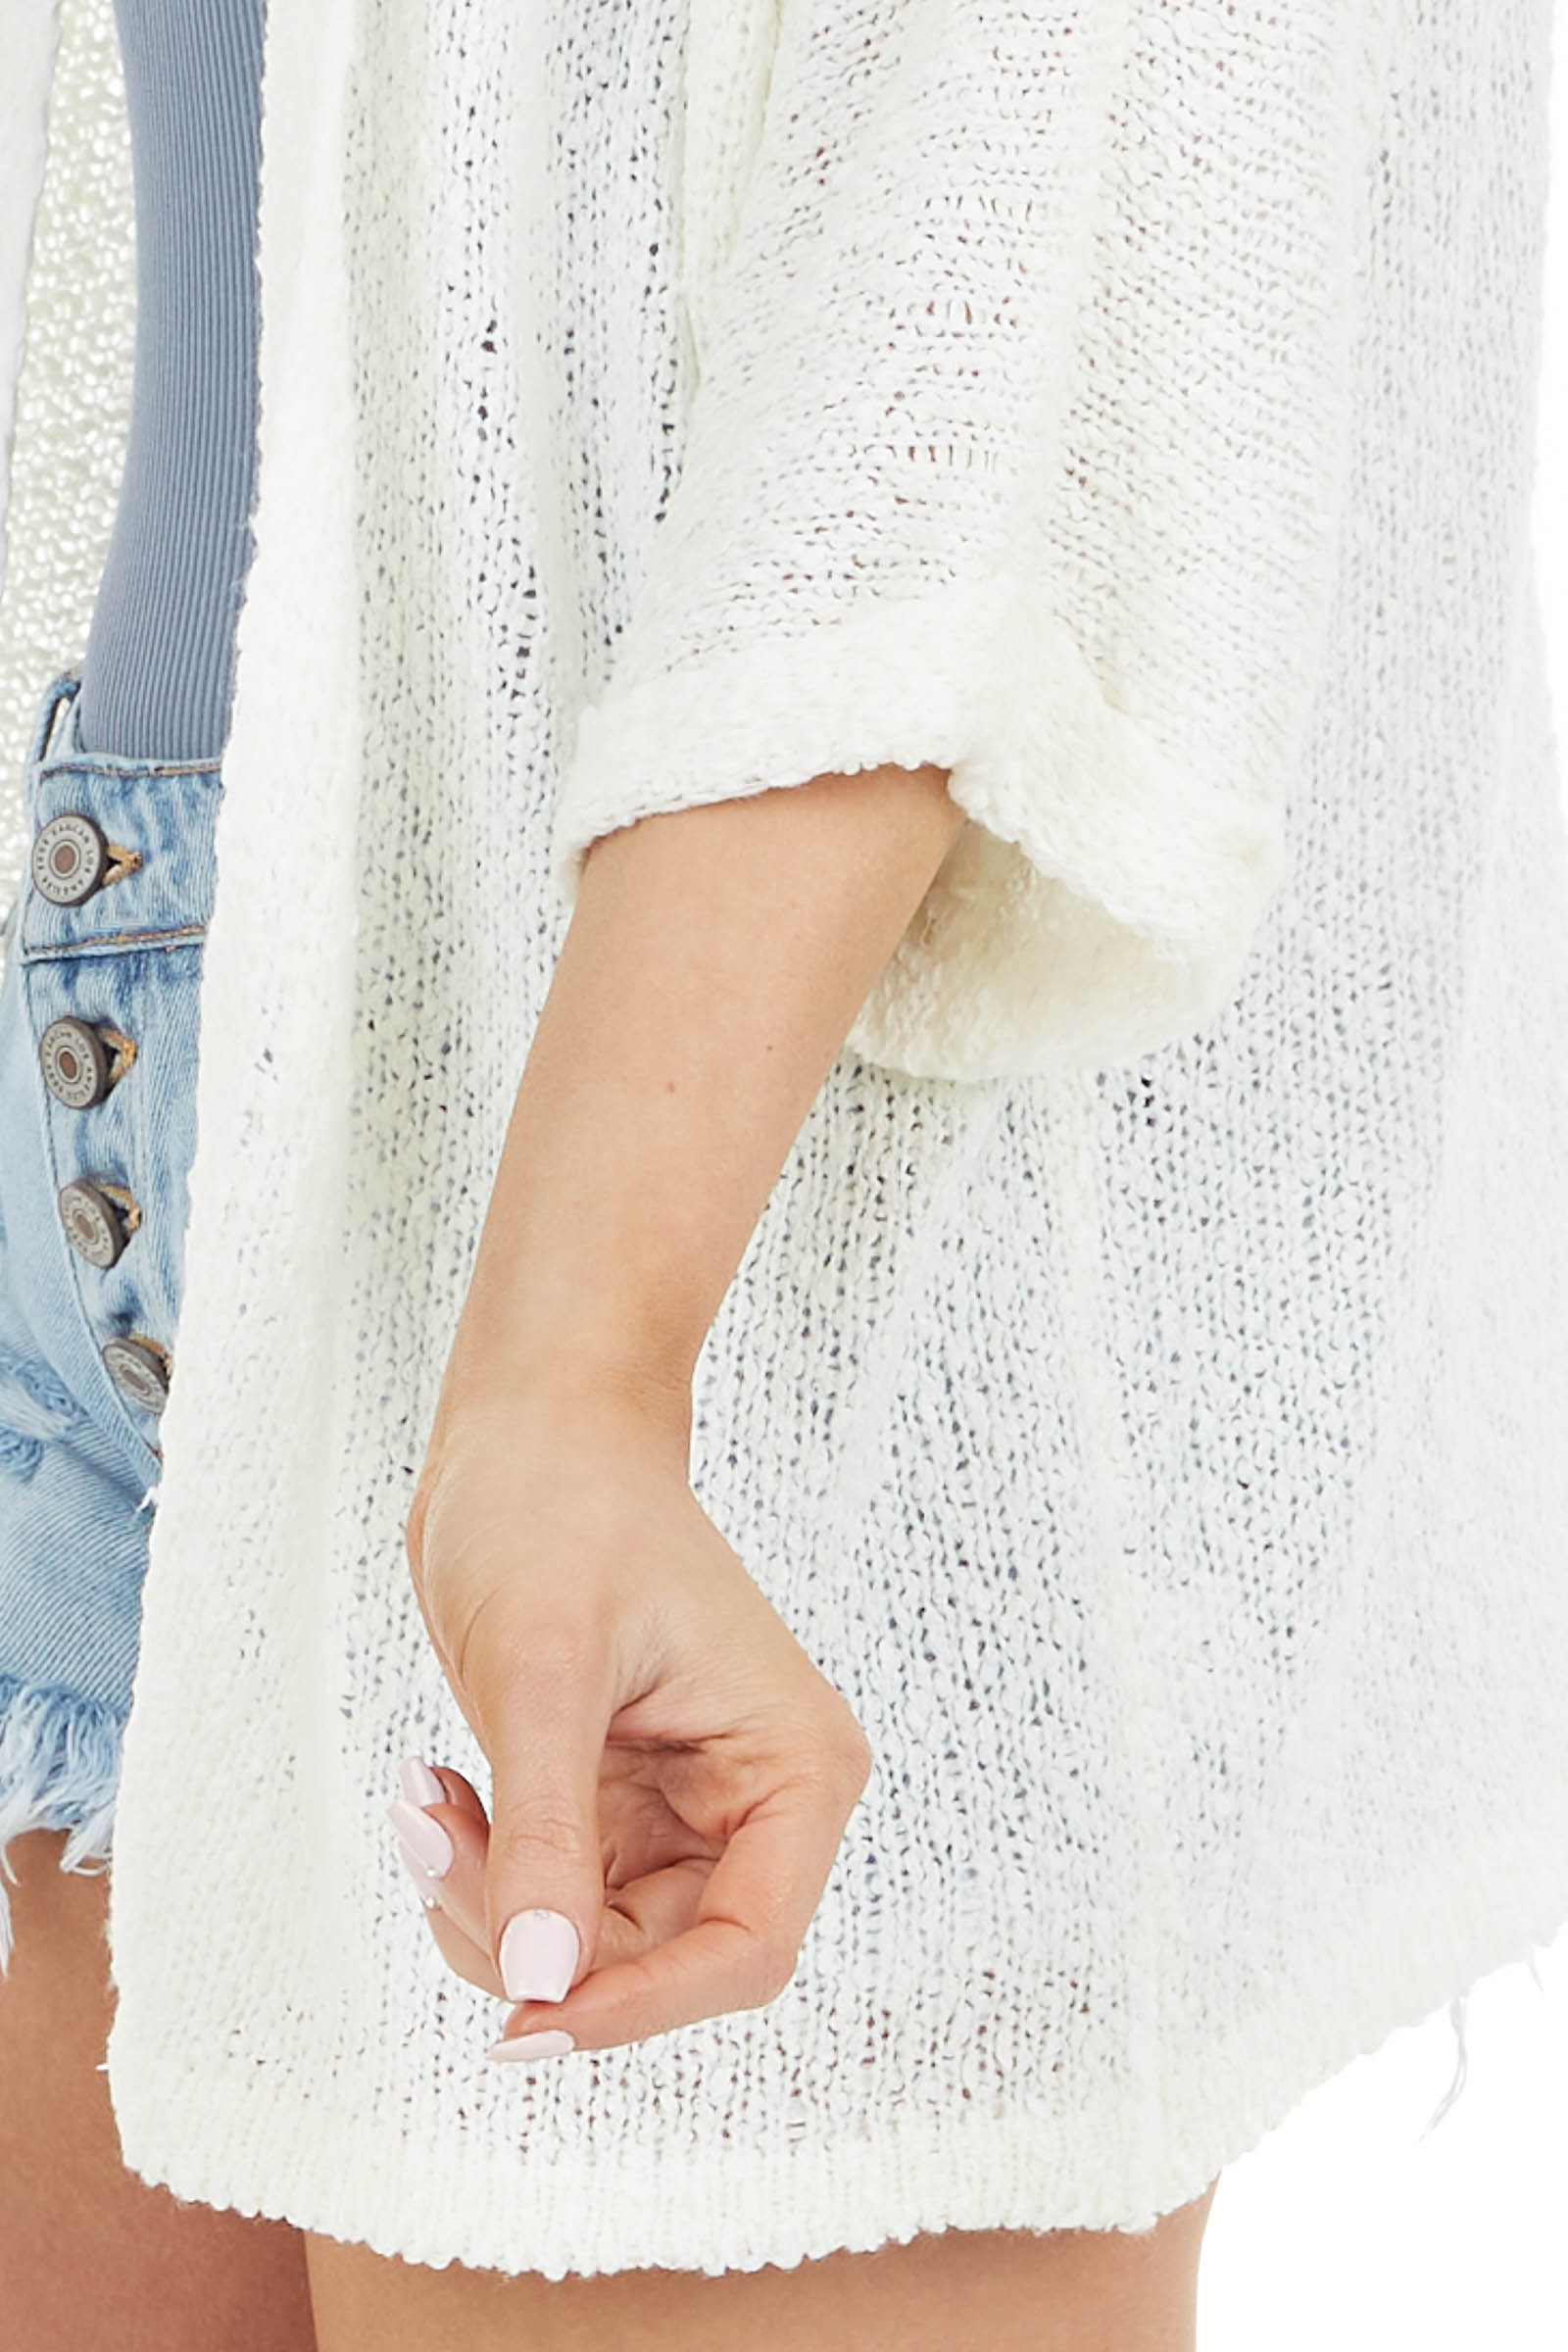 Ivory Textured Knit Cardigan with 3/4 Length Cuffed Sleeves